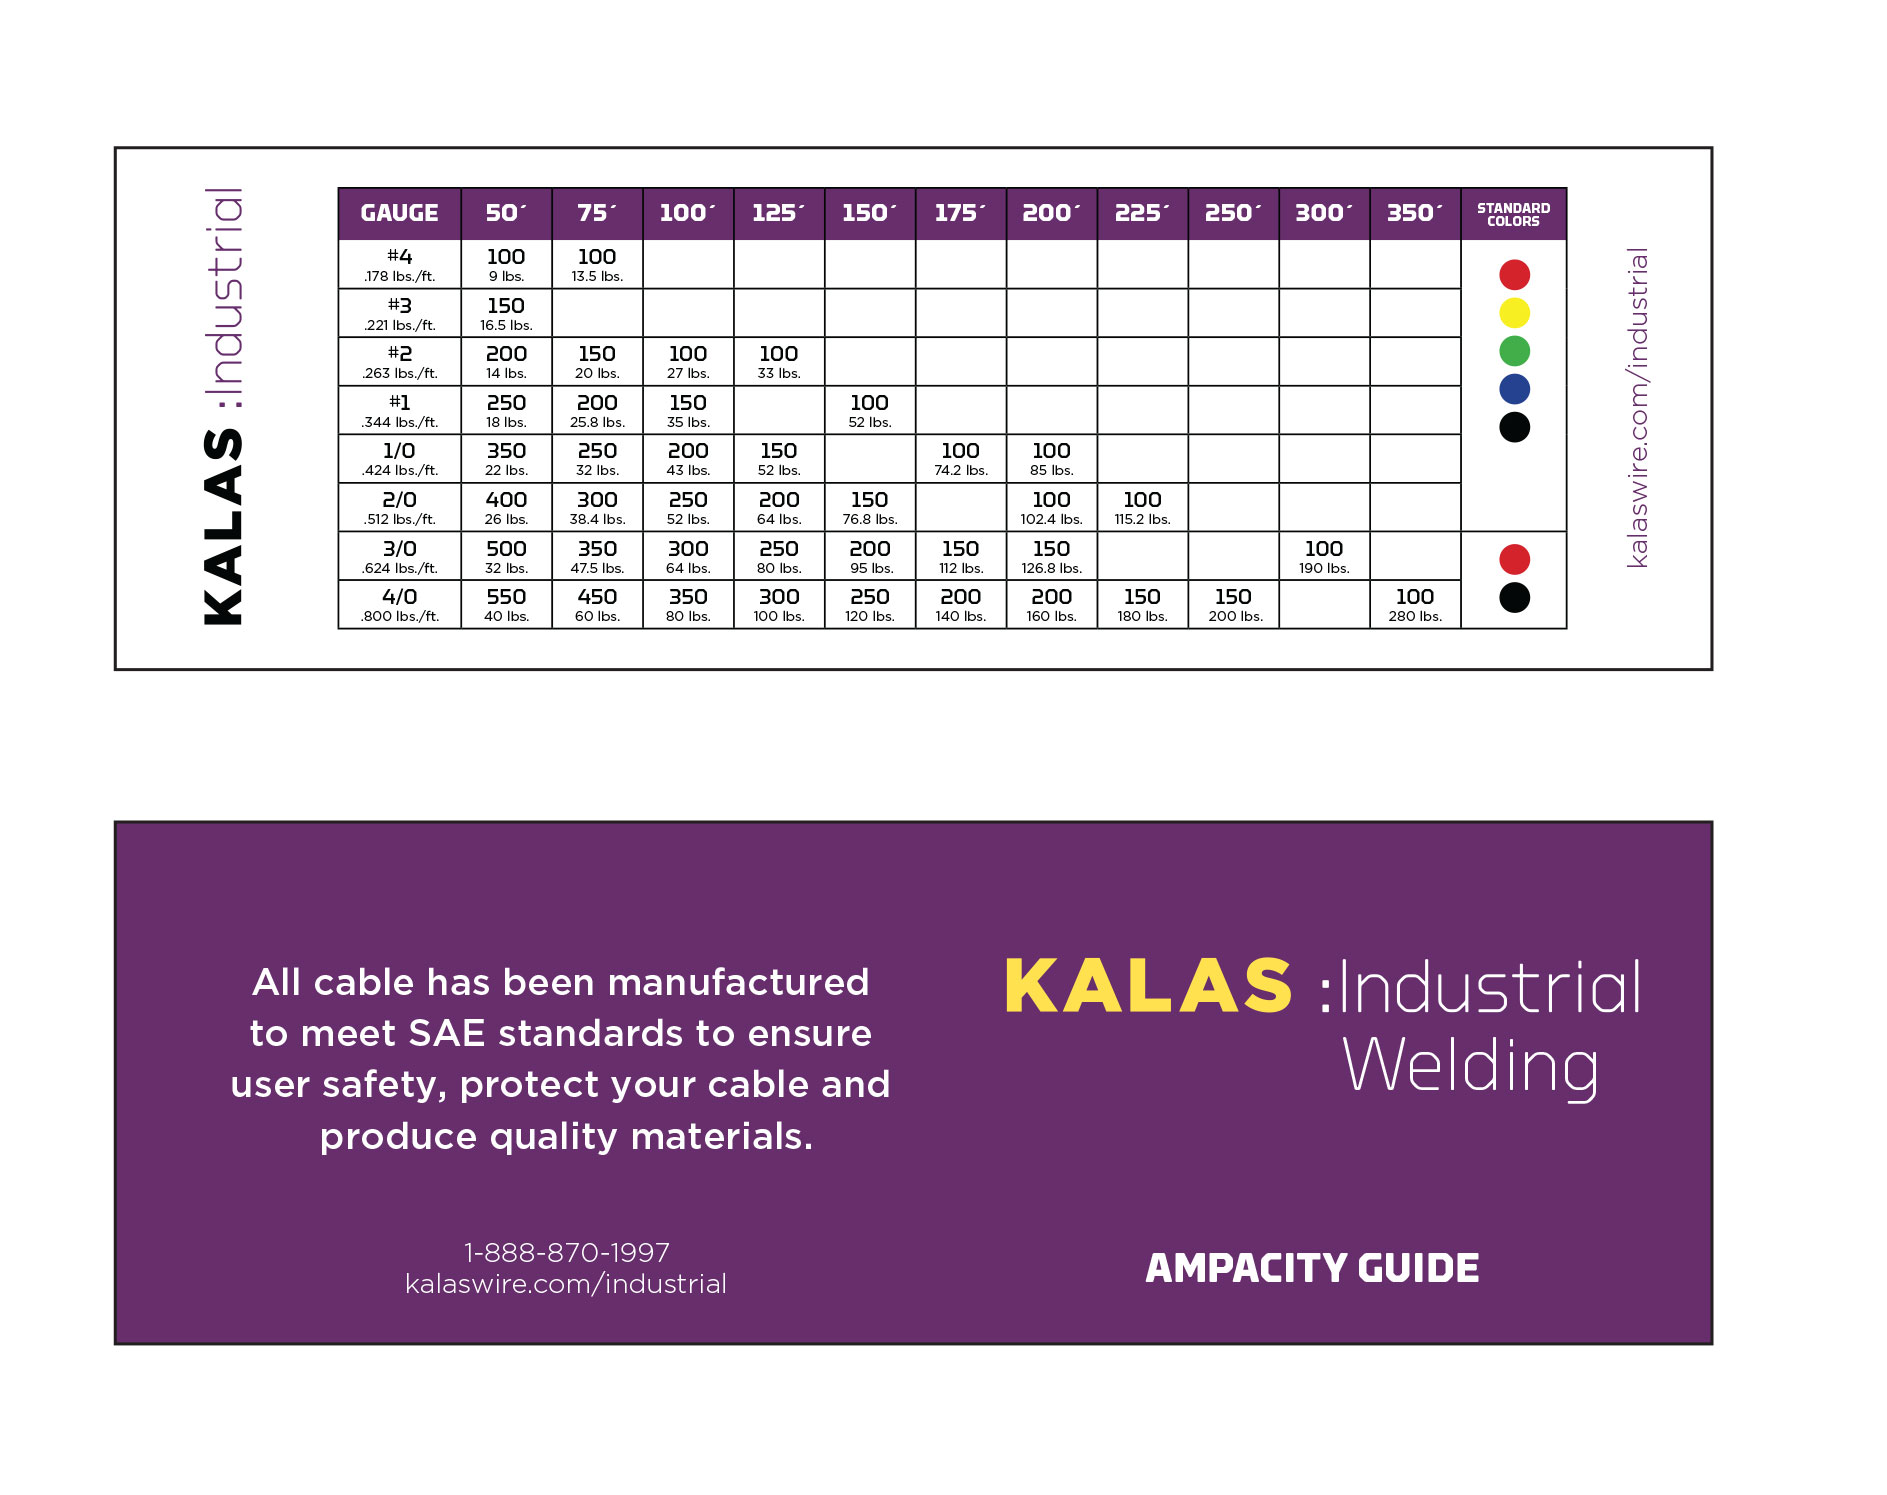 Kalas industrial kalas wire datapages ampacity charts chain sets for displays and more keyboard keysfo Gallery